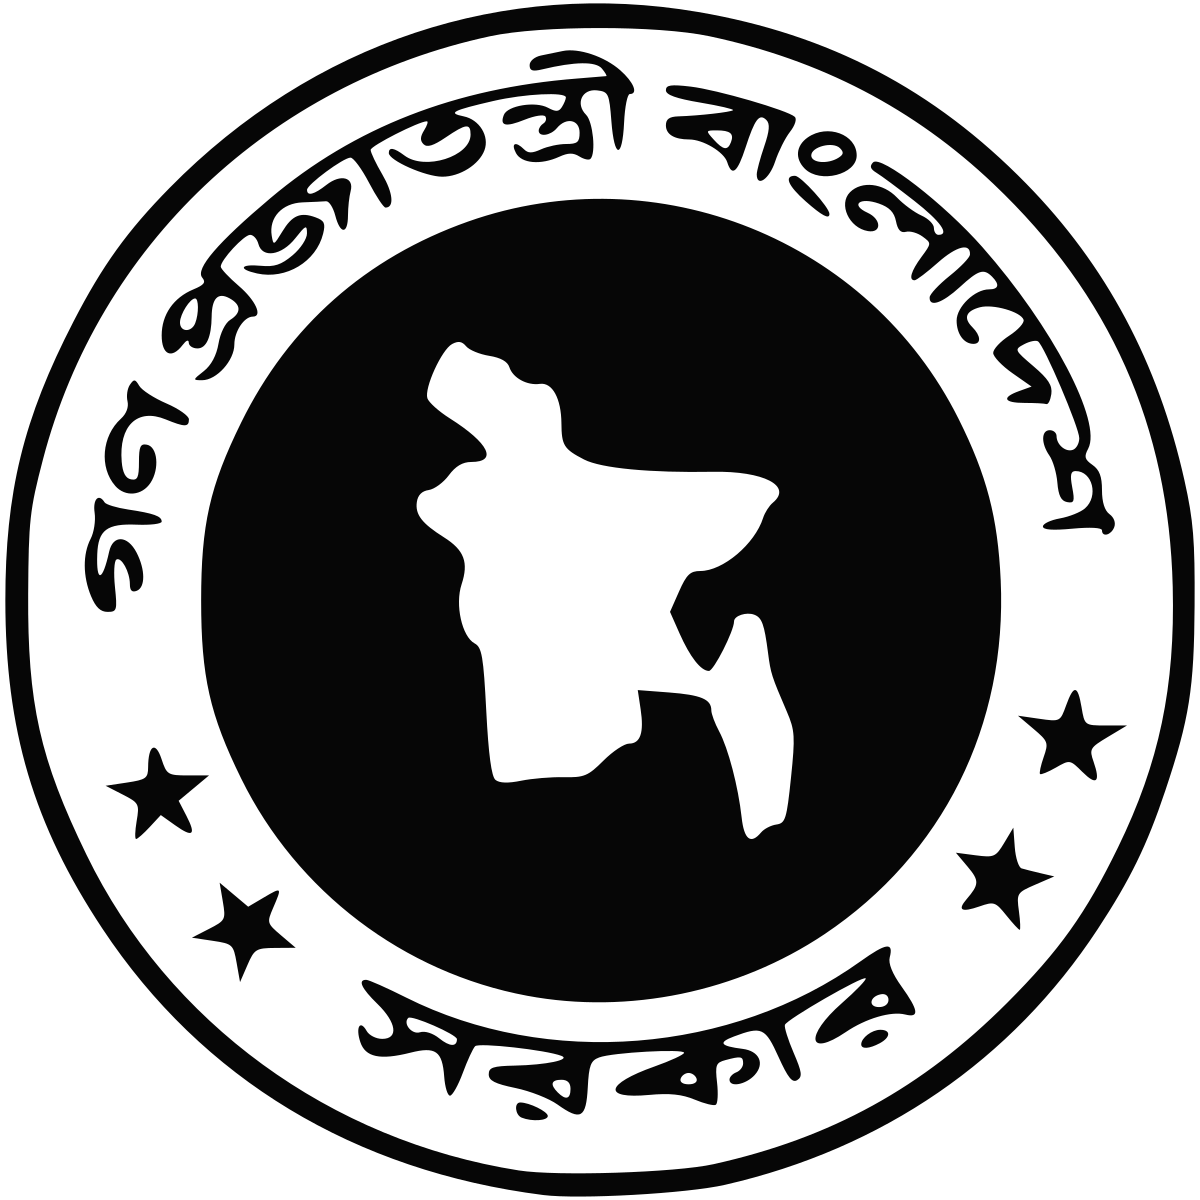 File:Emblem of the Government of the People\'s Republic of.